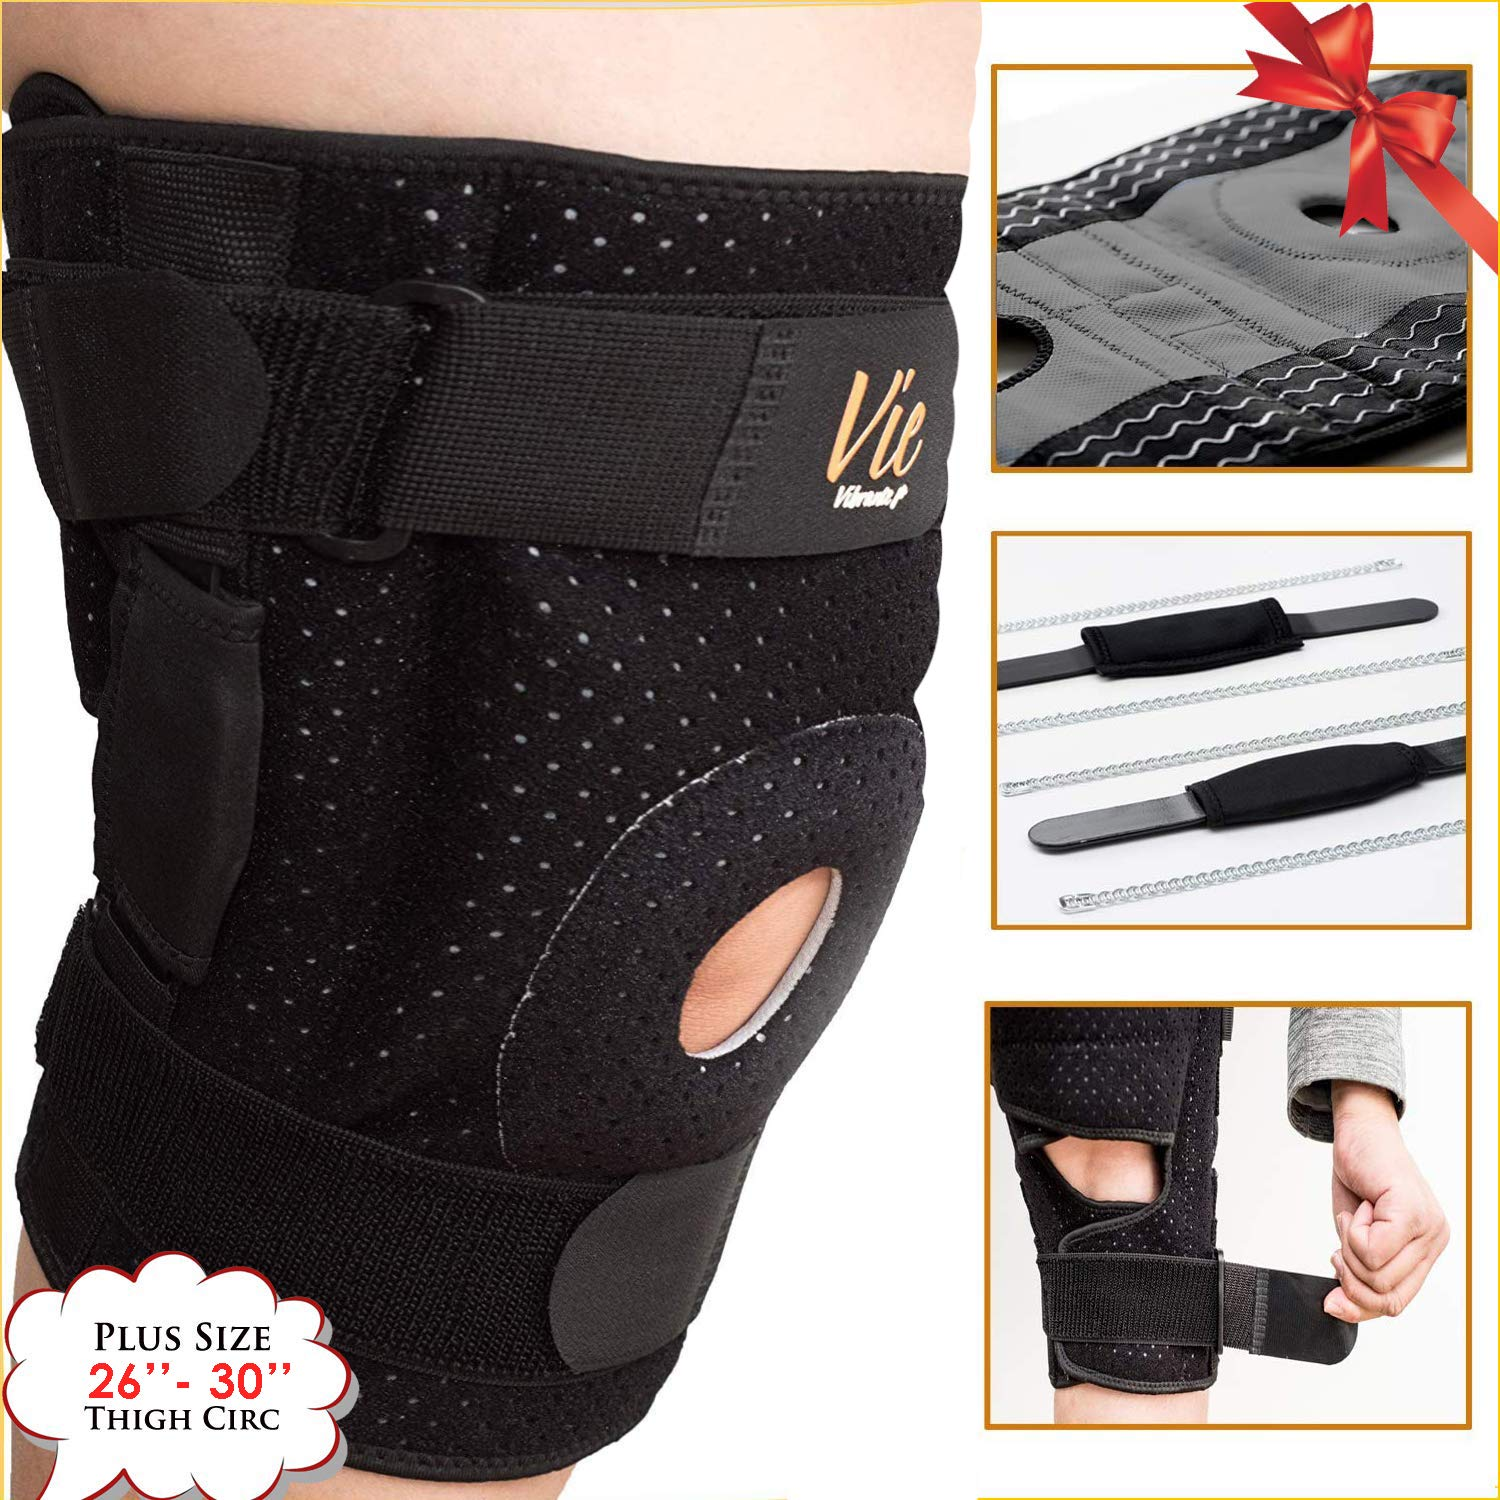 Hinged Knee Brace Plus Size - Newly Engineered Knee Braces with Enhancement on Flexibility, Extra Supportive, Non-Slip and Non Bulky - Vie Vibrante (Size 3: fits 26-30'' Thigh Circumference, Black)